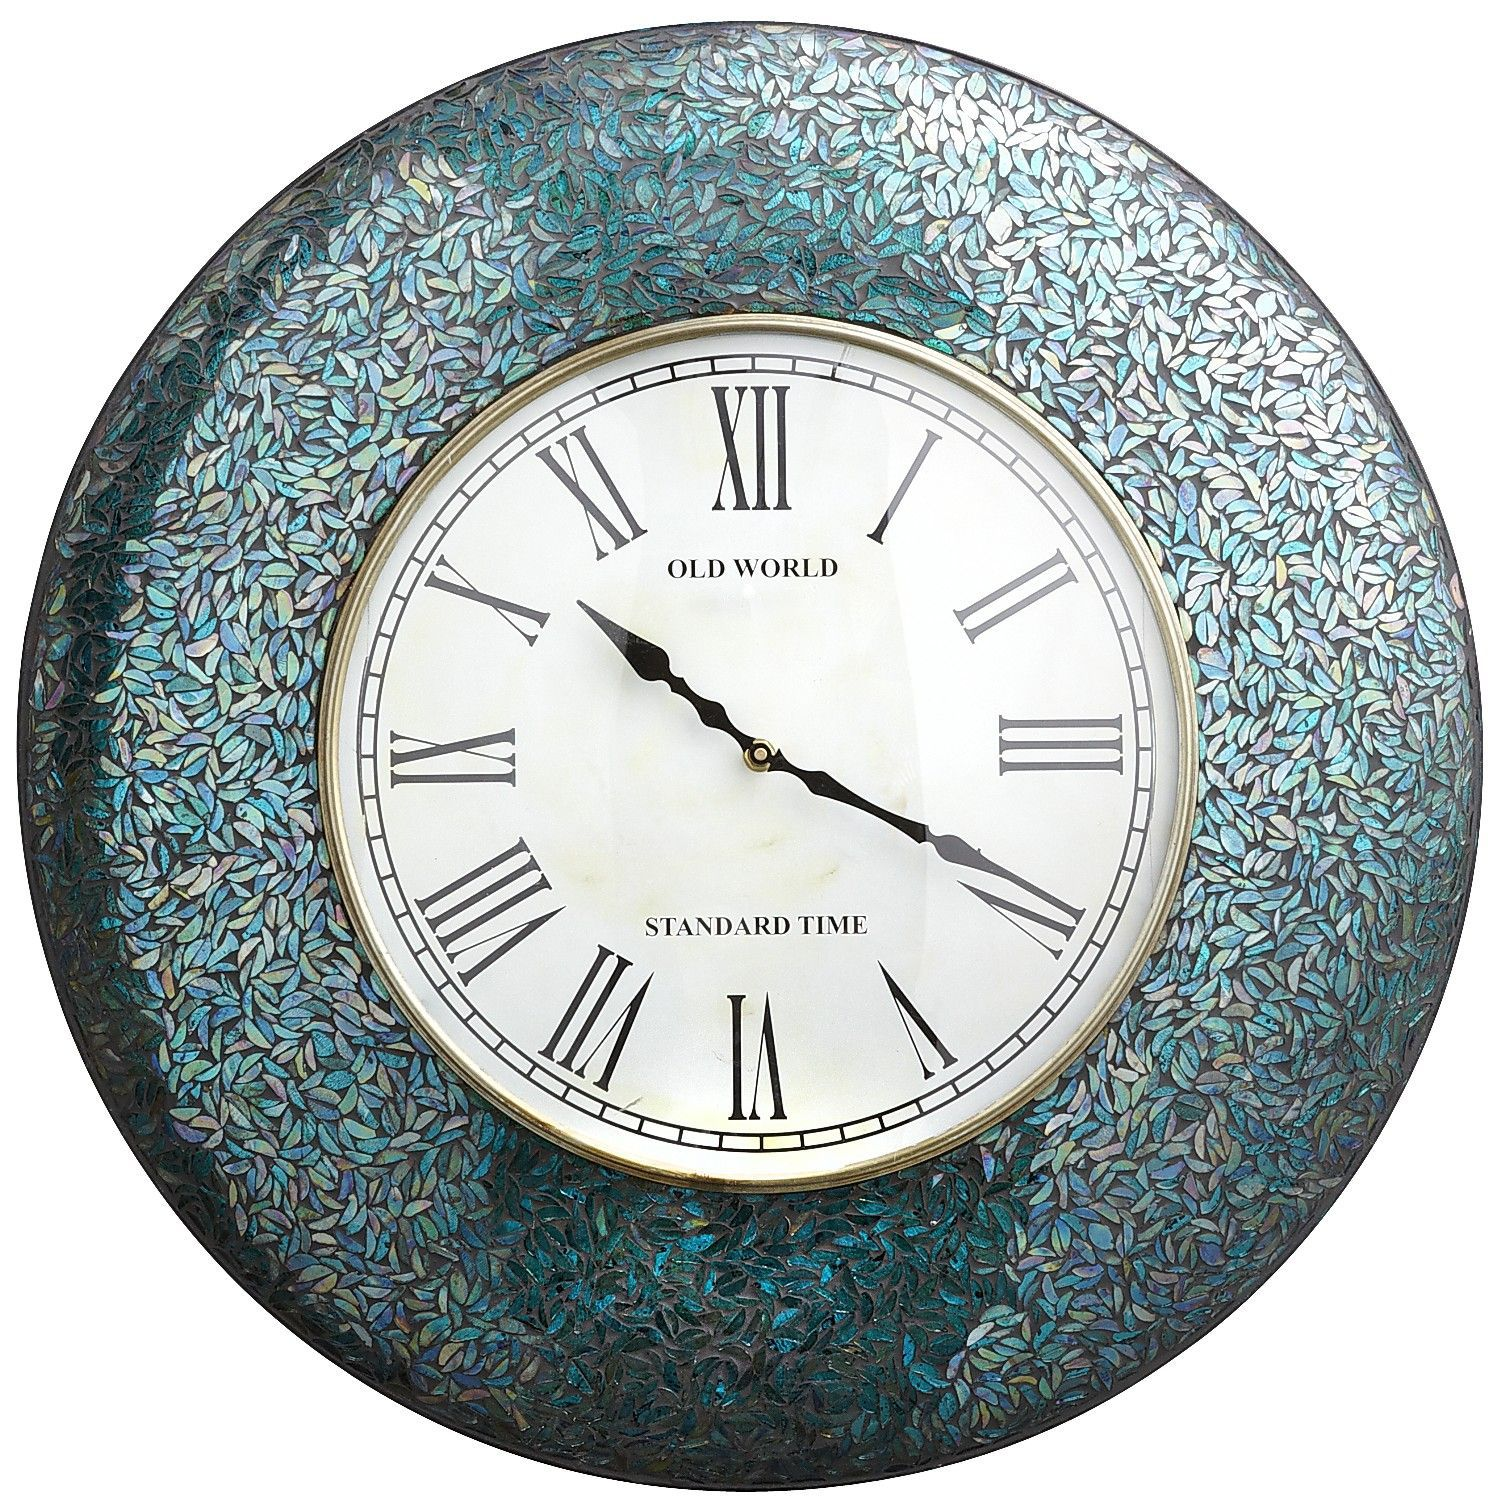 Pier 1 Peacock Mosaic Clock Makes Watching Time Beautiful